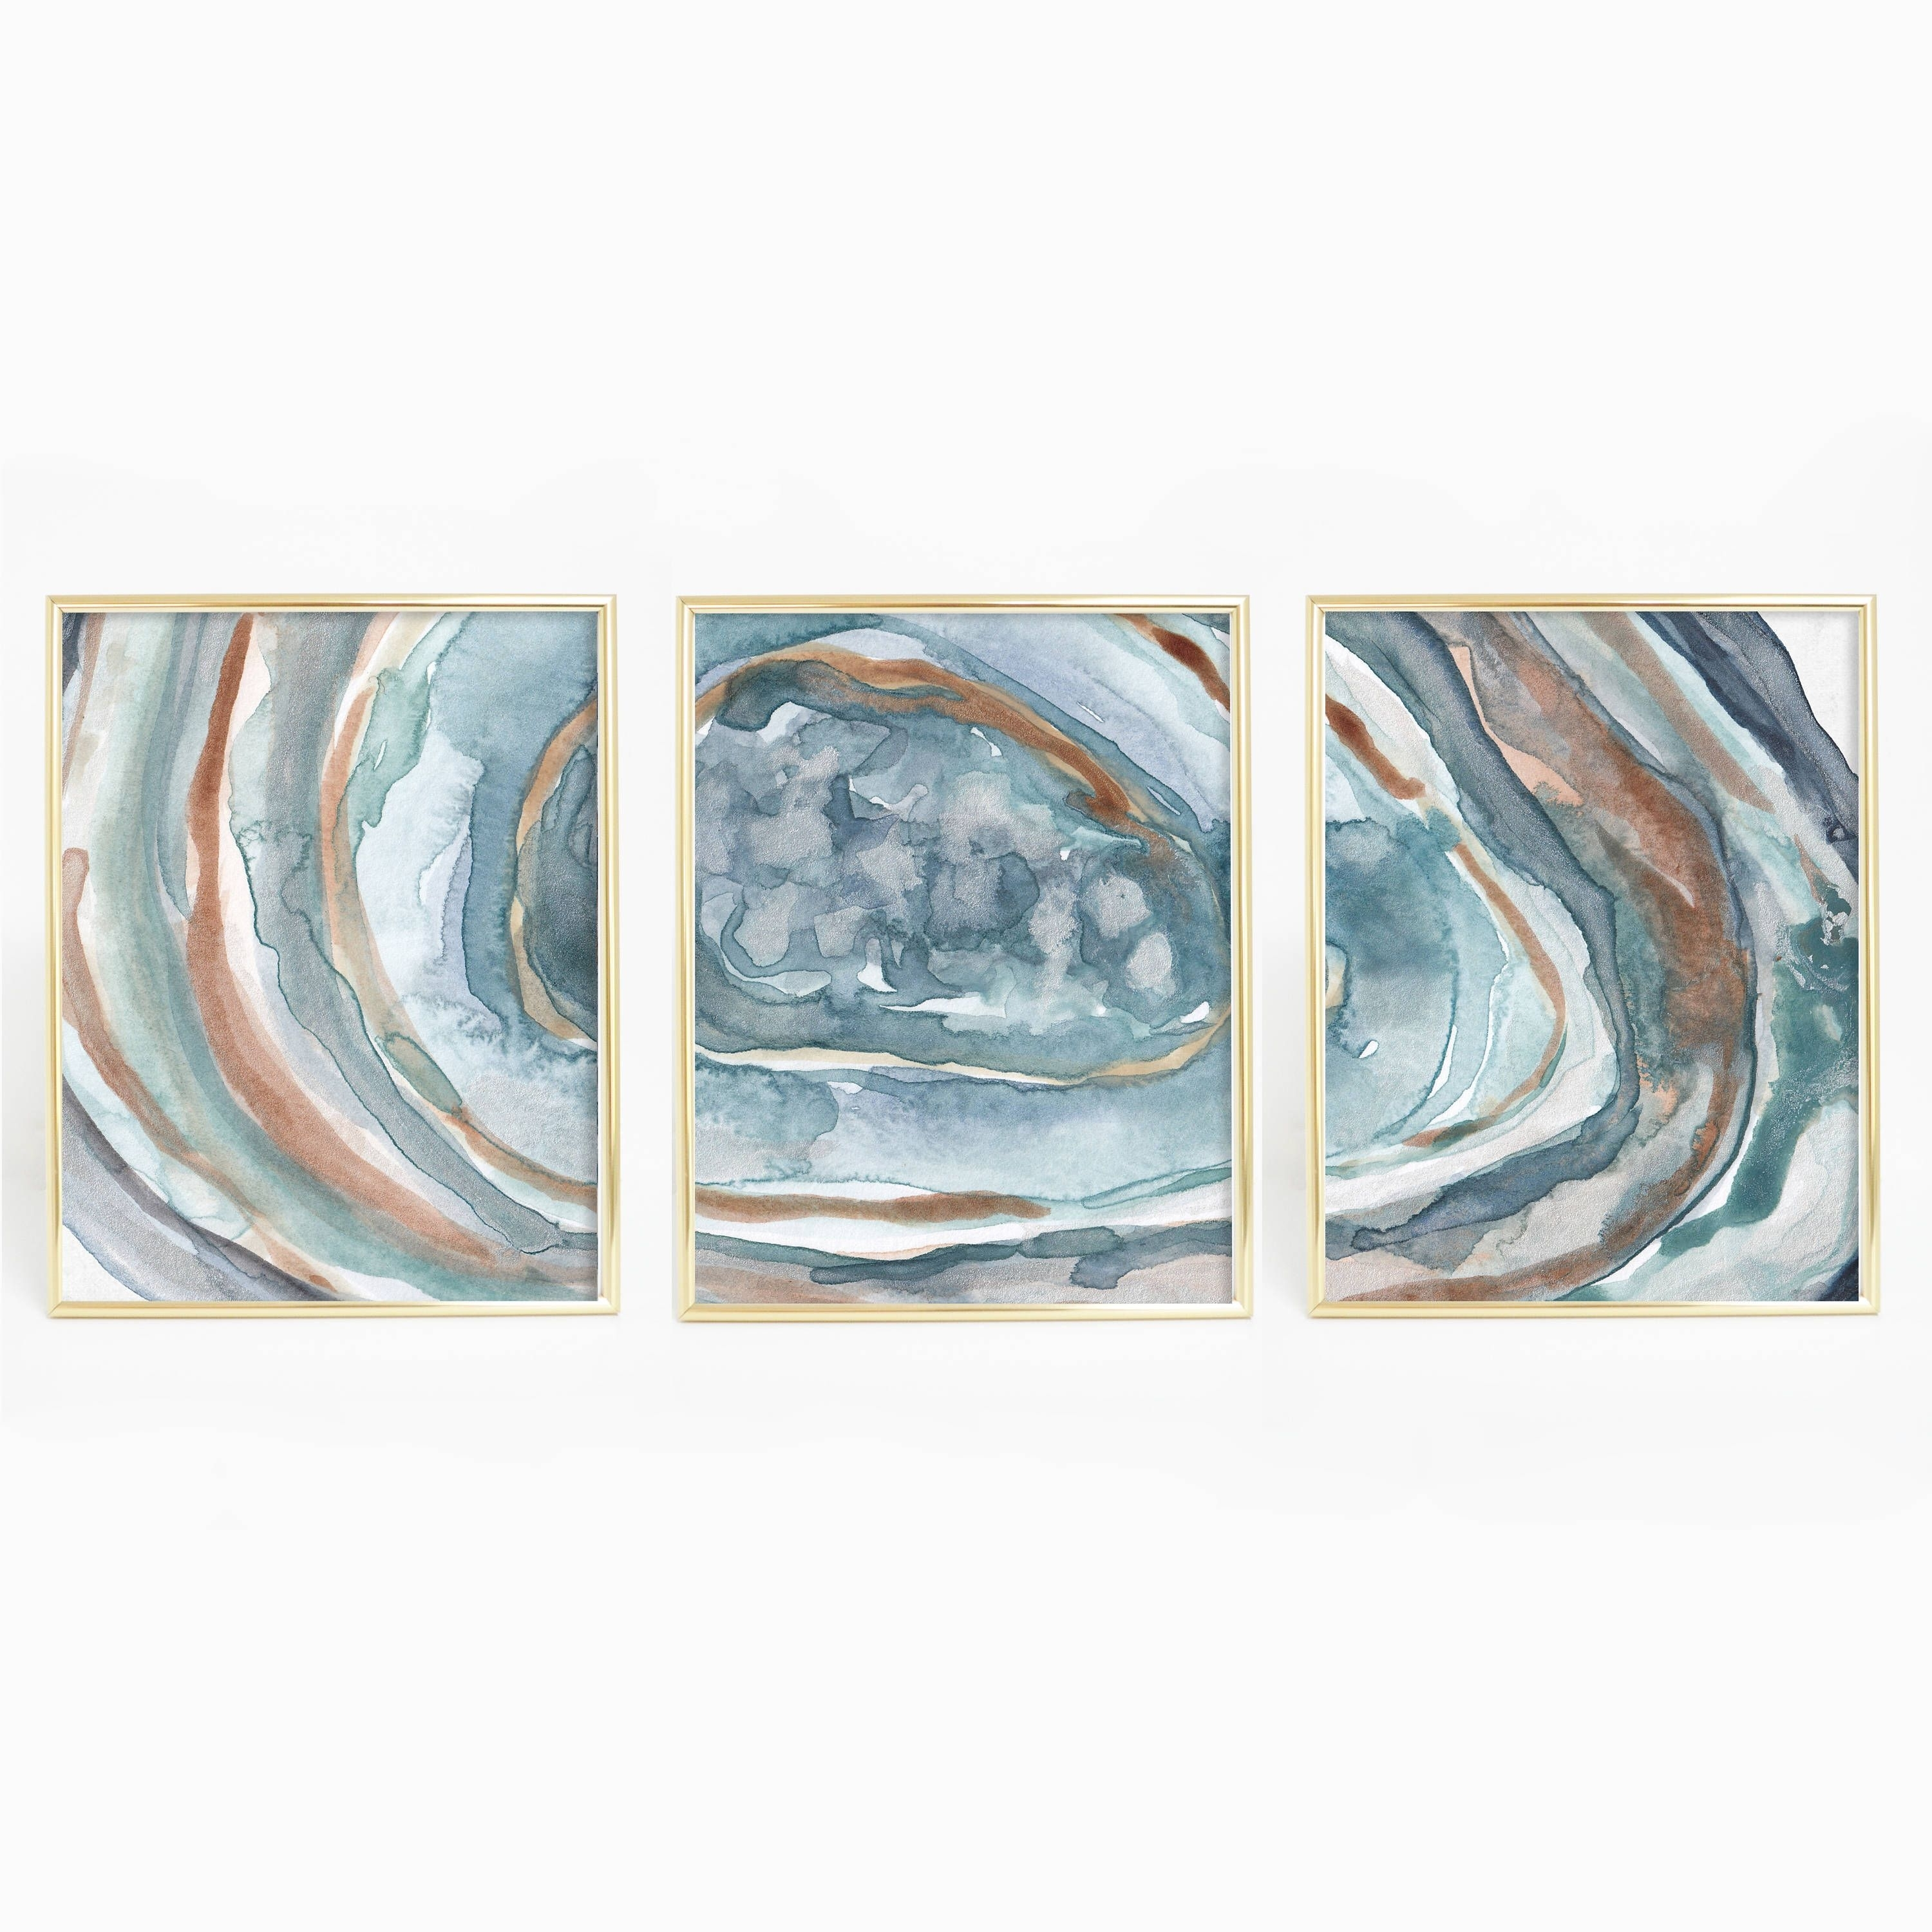 Turquoise Agate Print, Crystal Wall Art, Geode Painting, Watercolor For Most Up To Date Turquoise Wall Art (View 13 of 20)